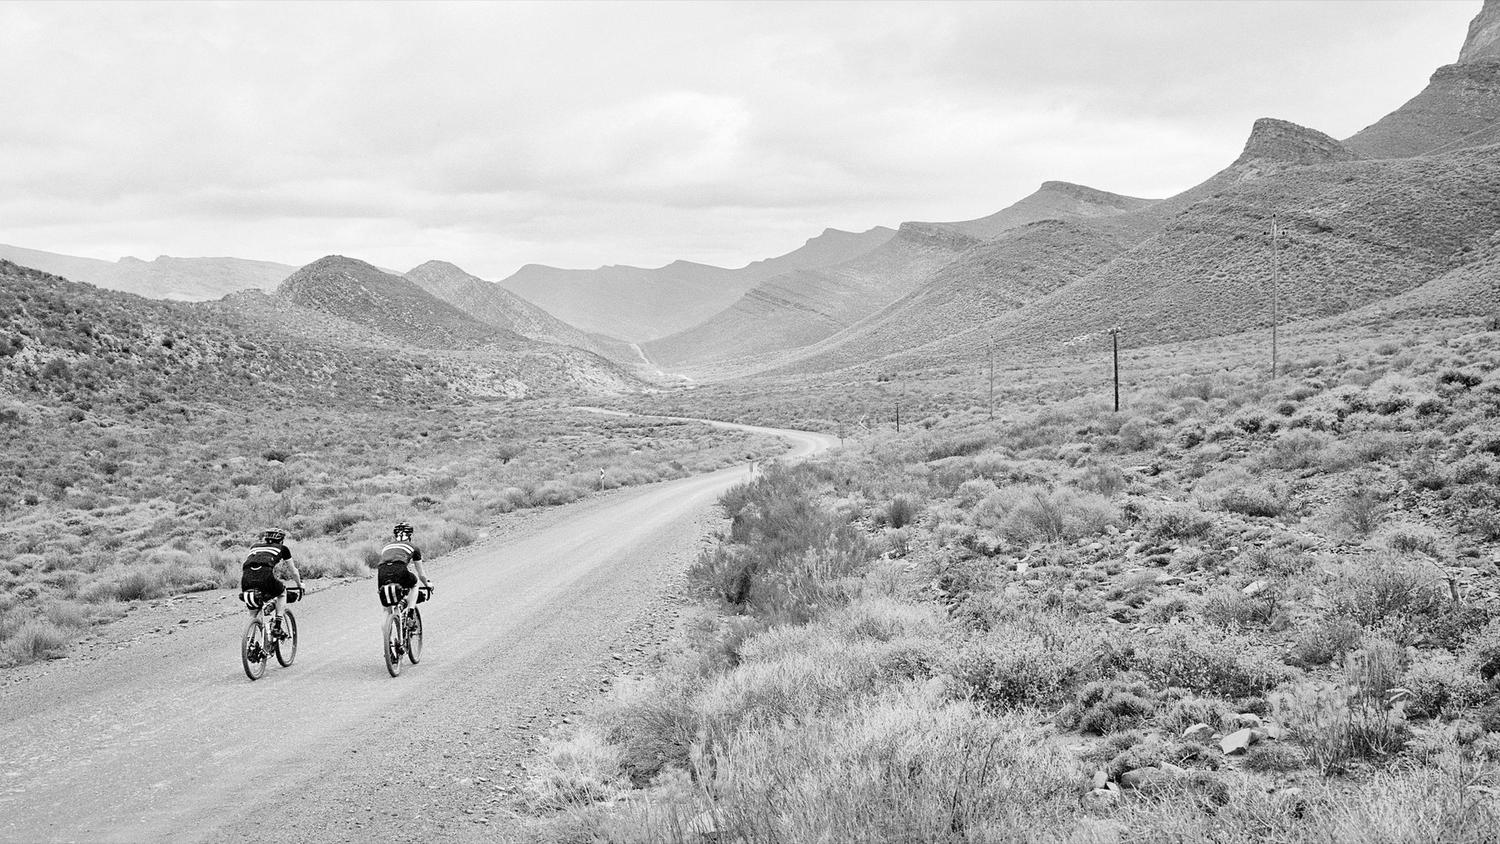 For the launch of the Brevet collection, three riders travelled to South Africa to explore part of the Tour of Ara – a 700km race across some of the country's most notorious and challenging terrain.